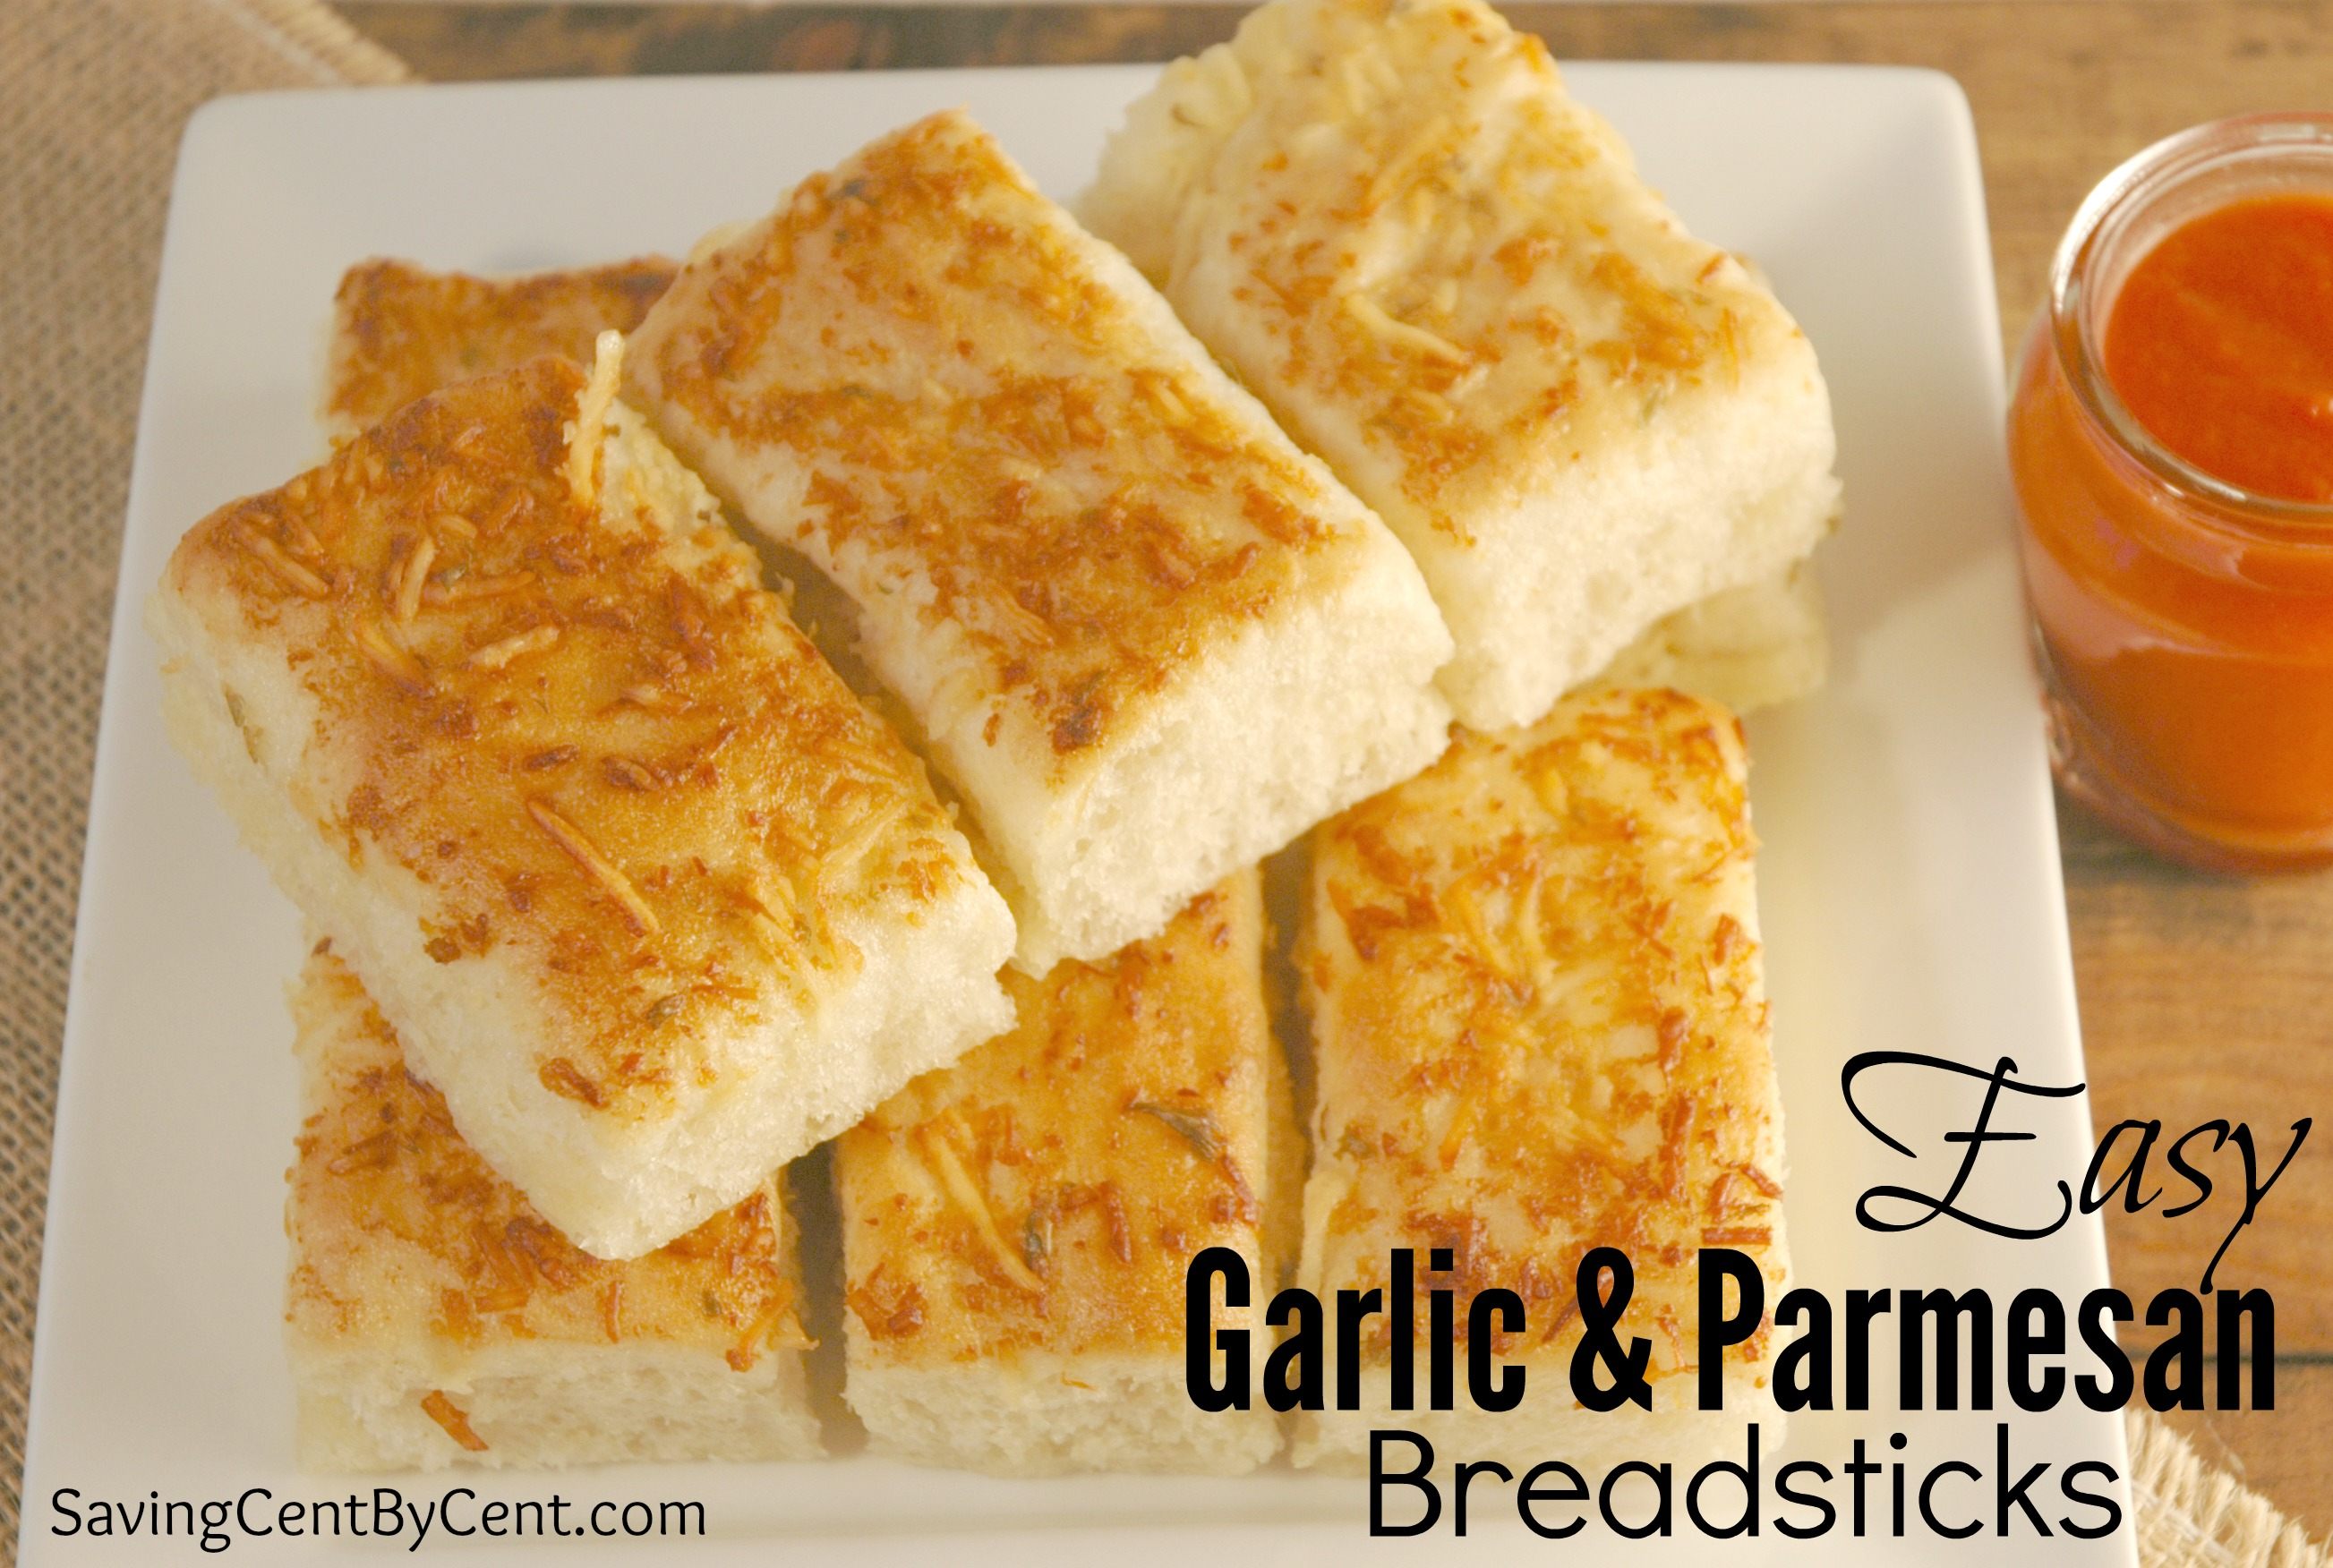 Delicious & Easy Garlic & Parmesan Breadsticks - Saving Cent by Cent